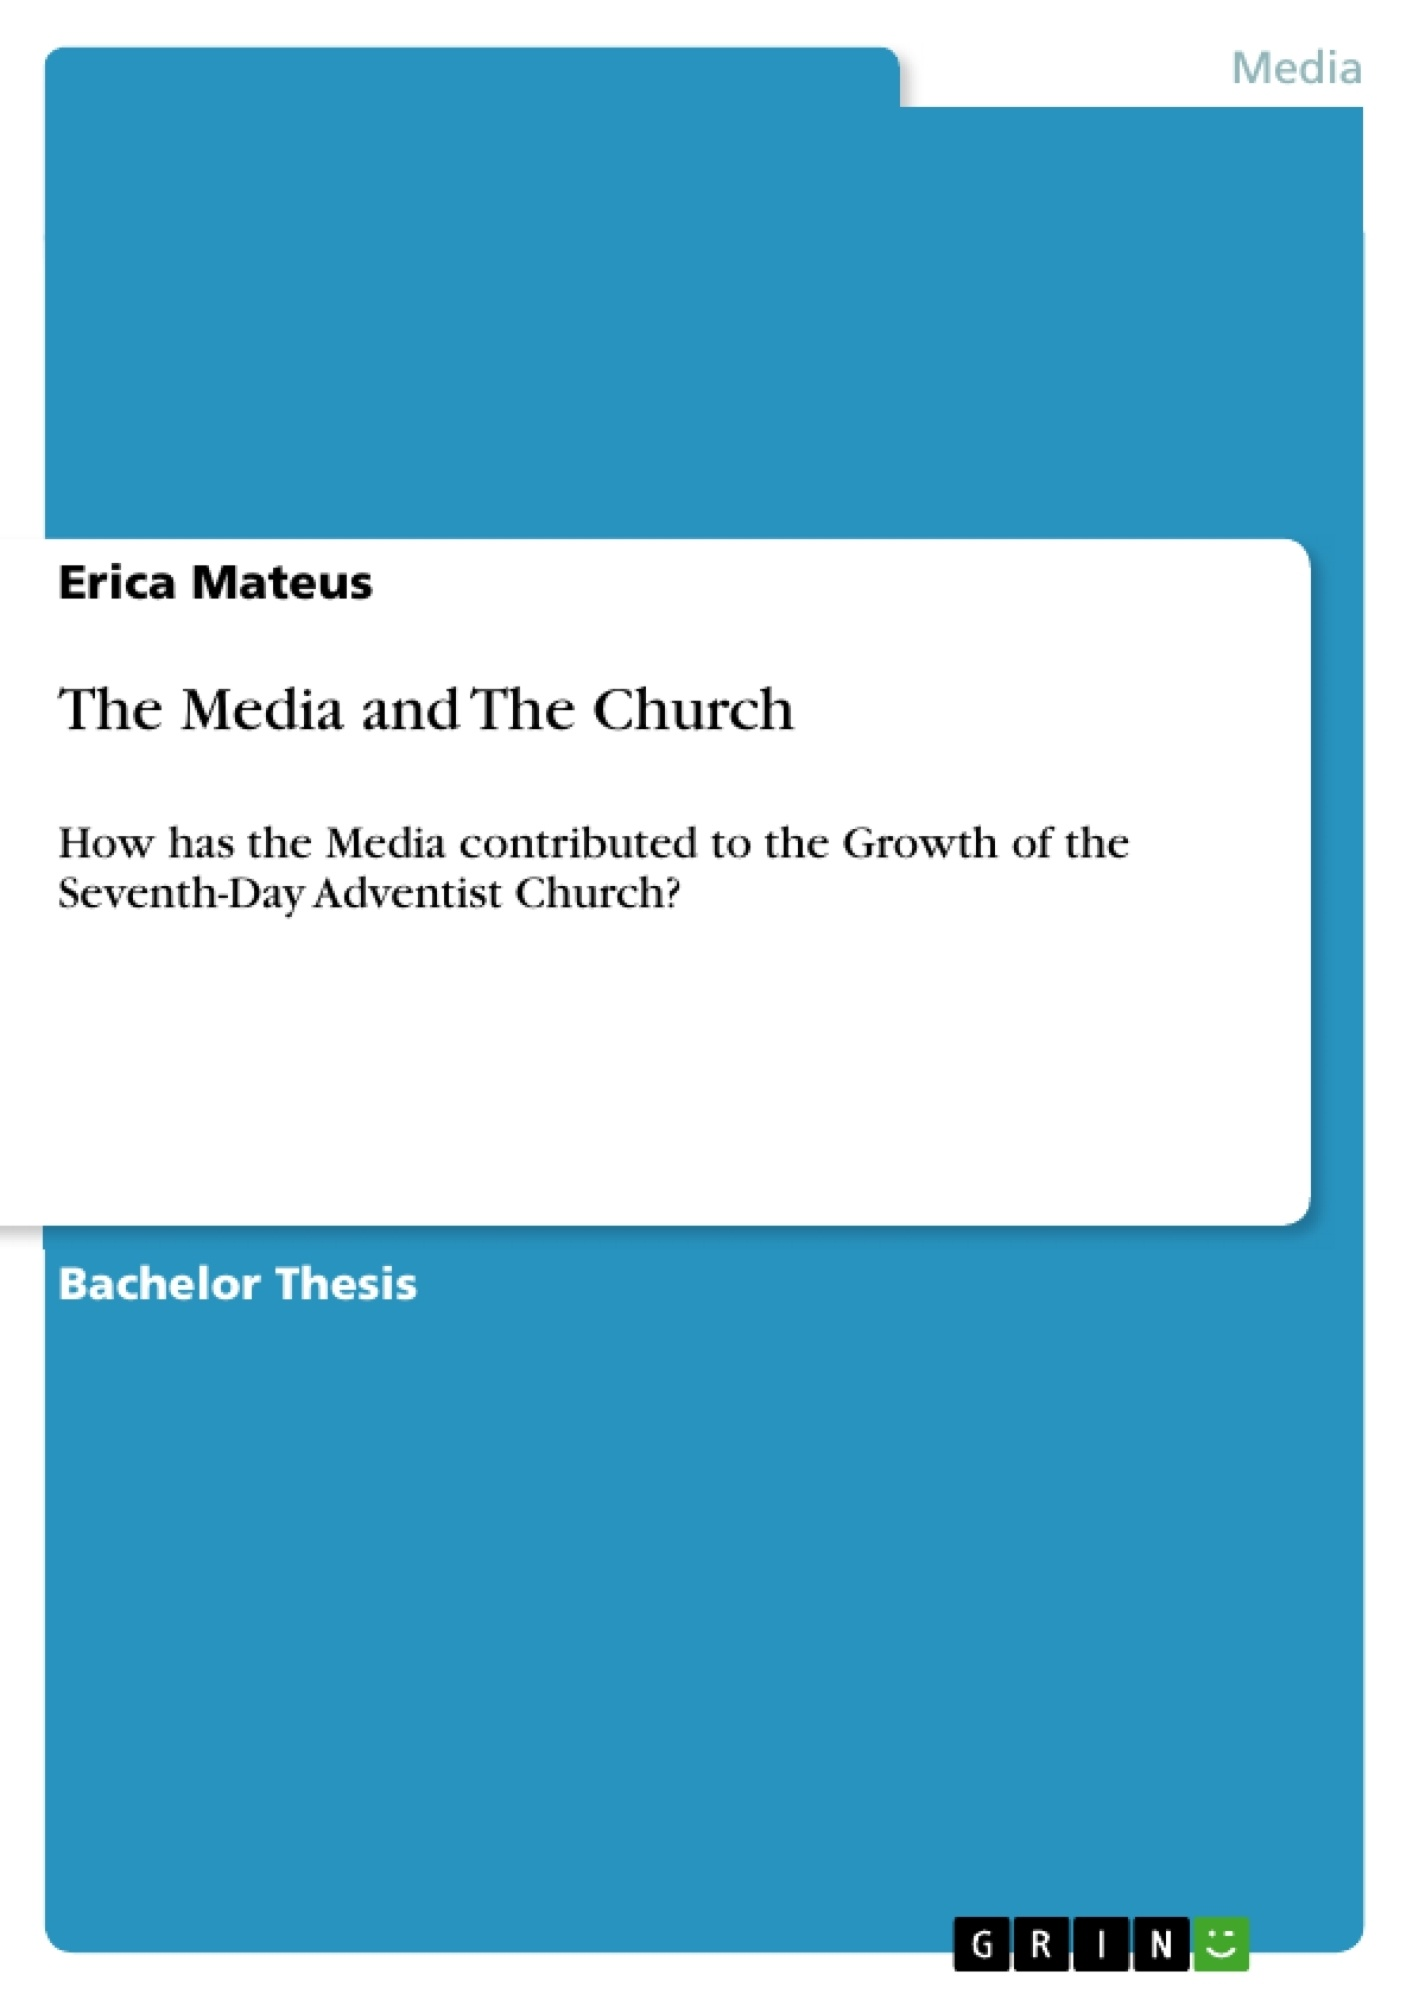 GRIN - The Media and The Church